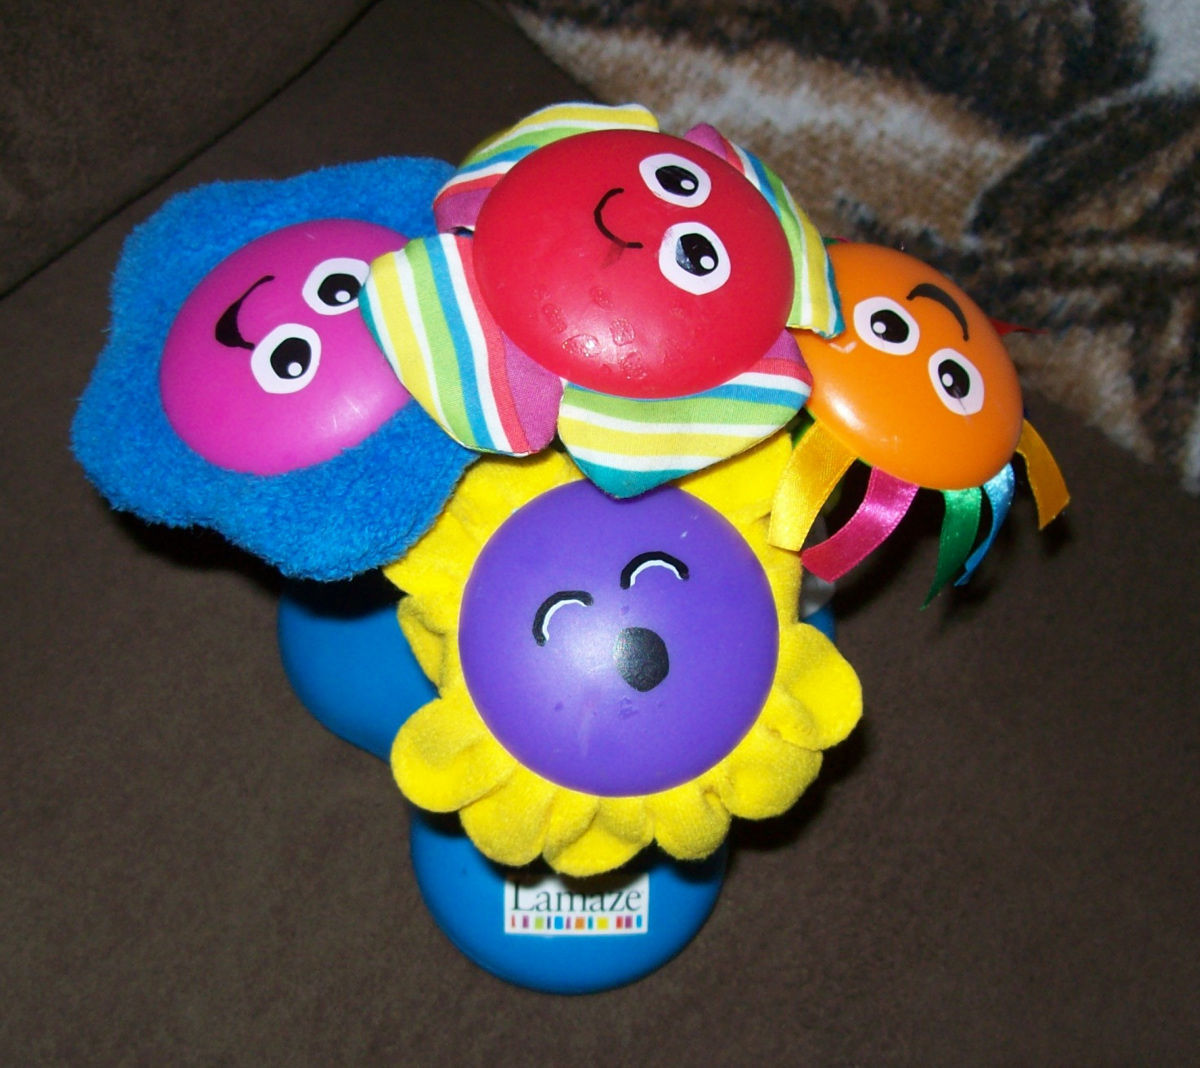 LAMAZE CHIME FLOWER GARDEN MUSICAL LIGHT UP FLOWERS INTERACTIVE BABY